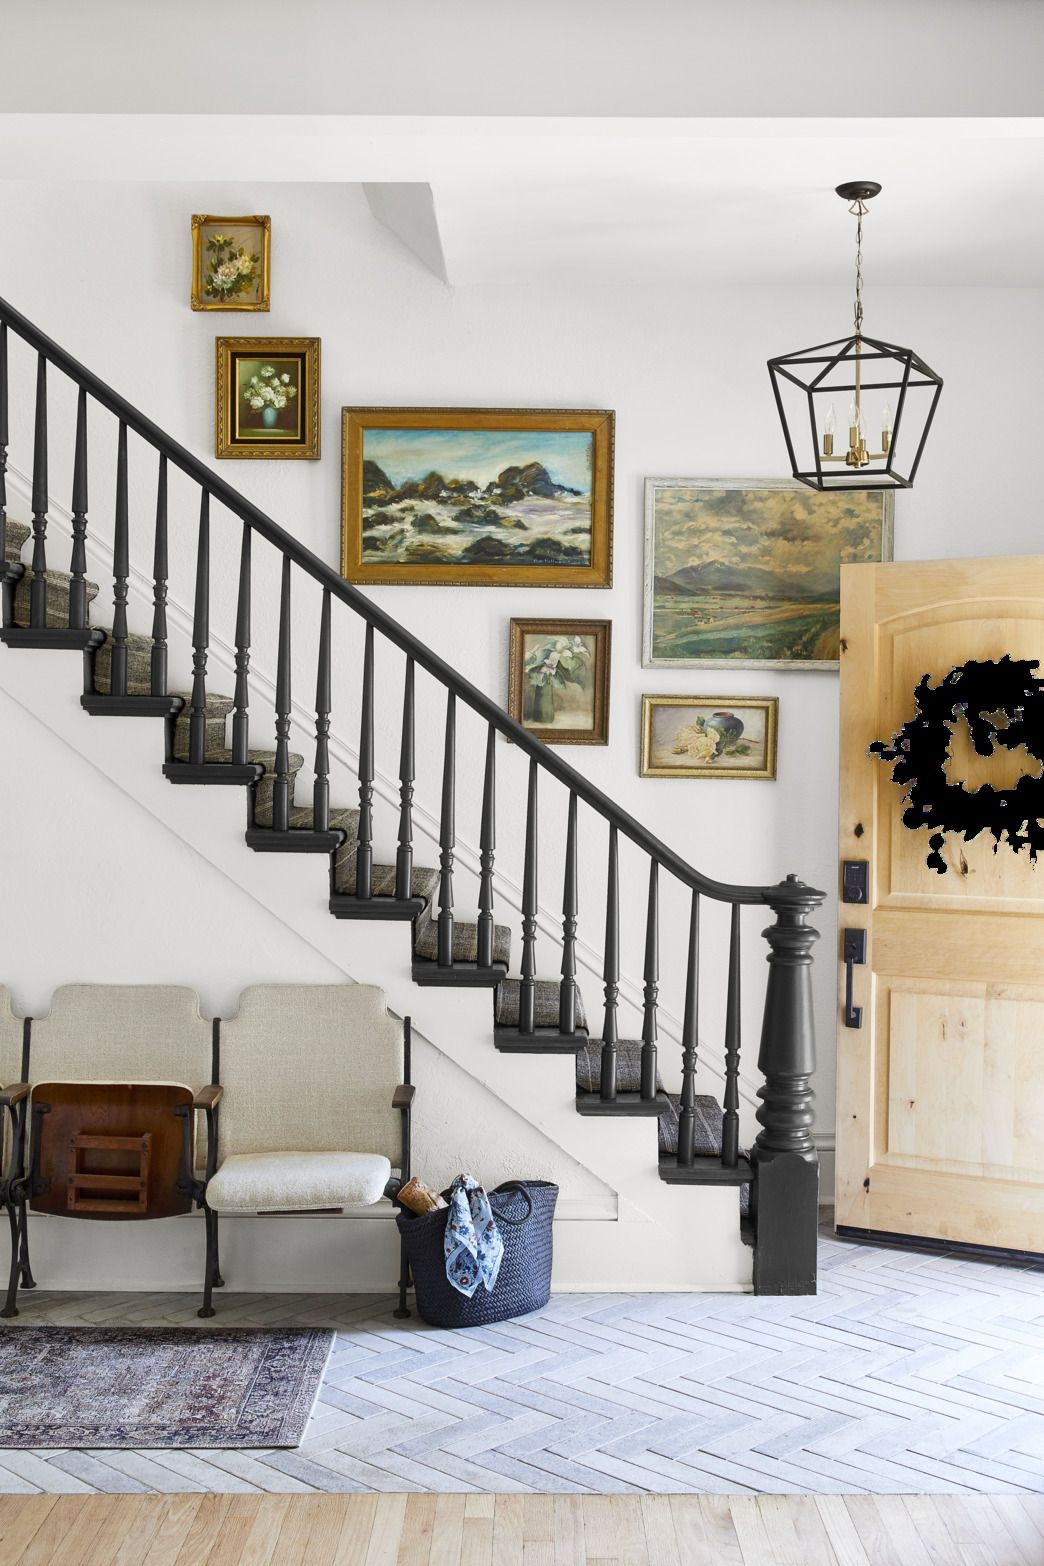 55 Best Staircase Ideas Top Ways To Decorate A Stairway   Ladder Design For Home   Decor   Space Saving   Room   Tiny House   Italian